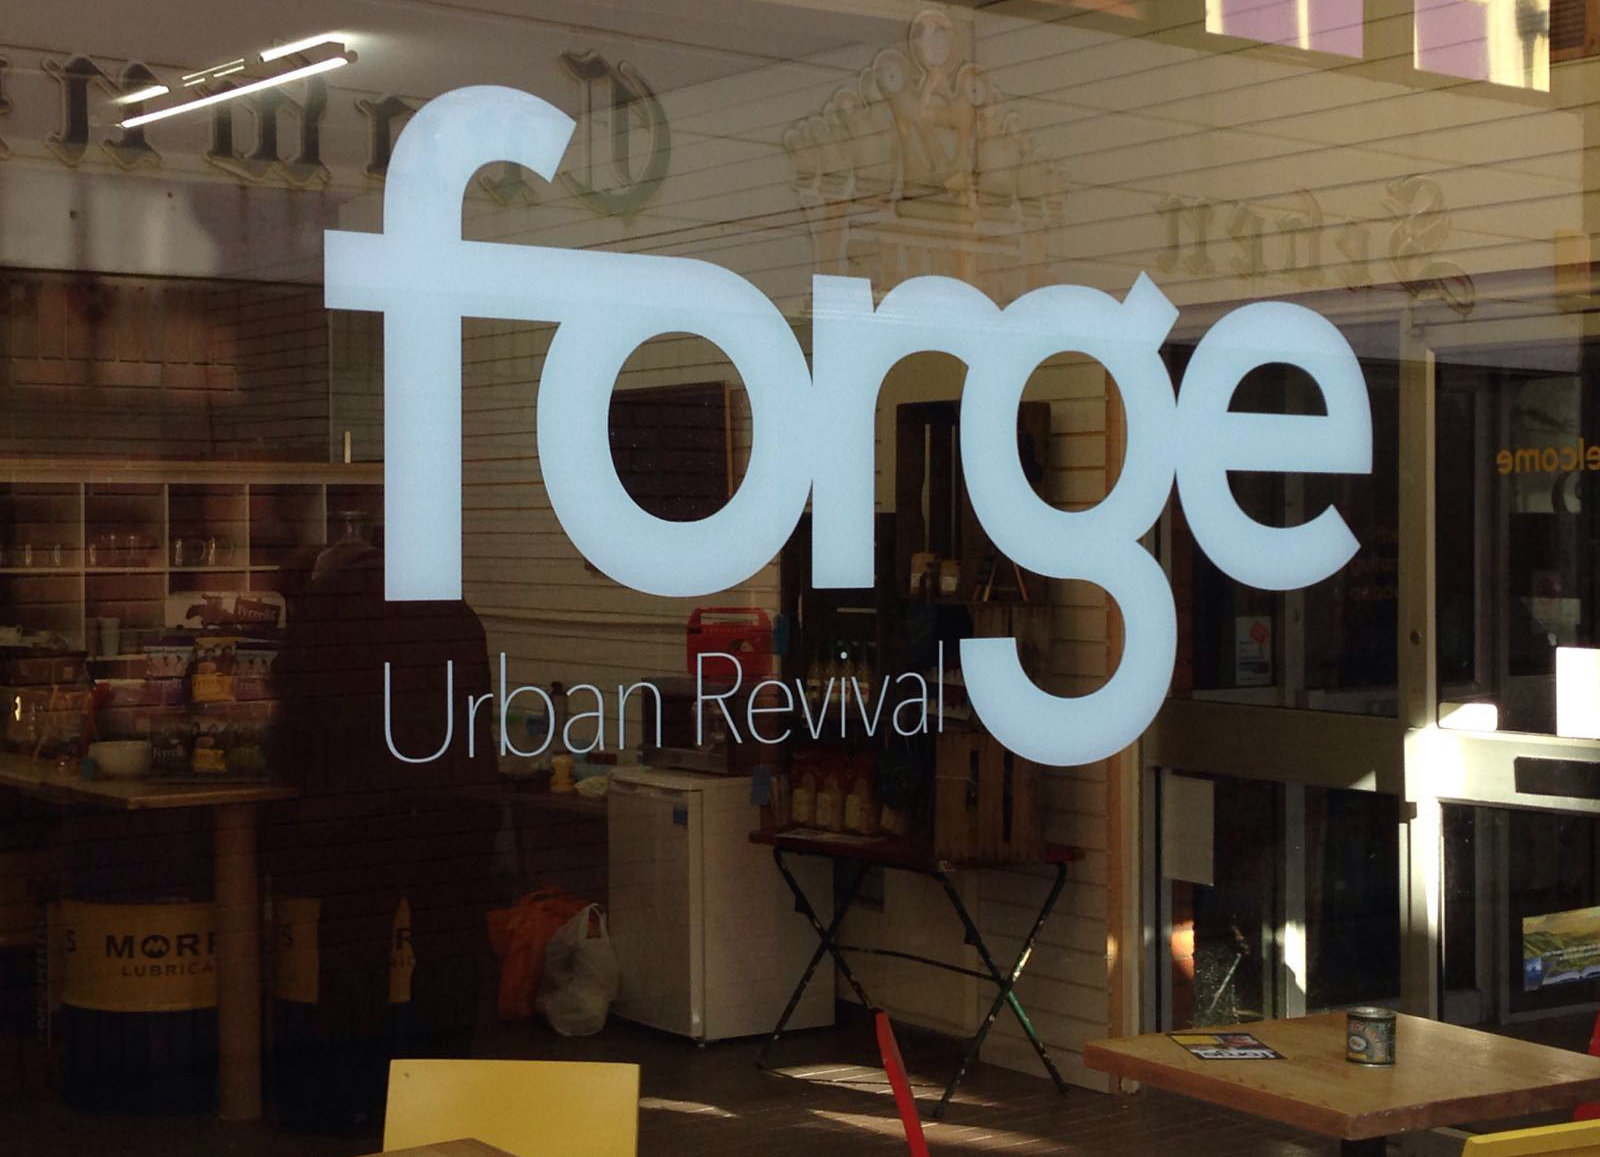 Andy attends opening of Forge : Urban Revival